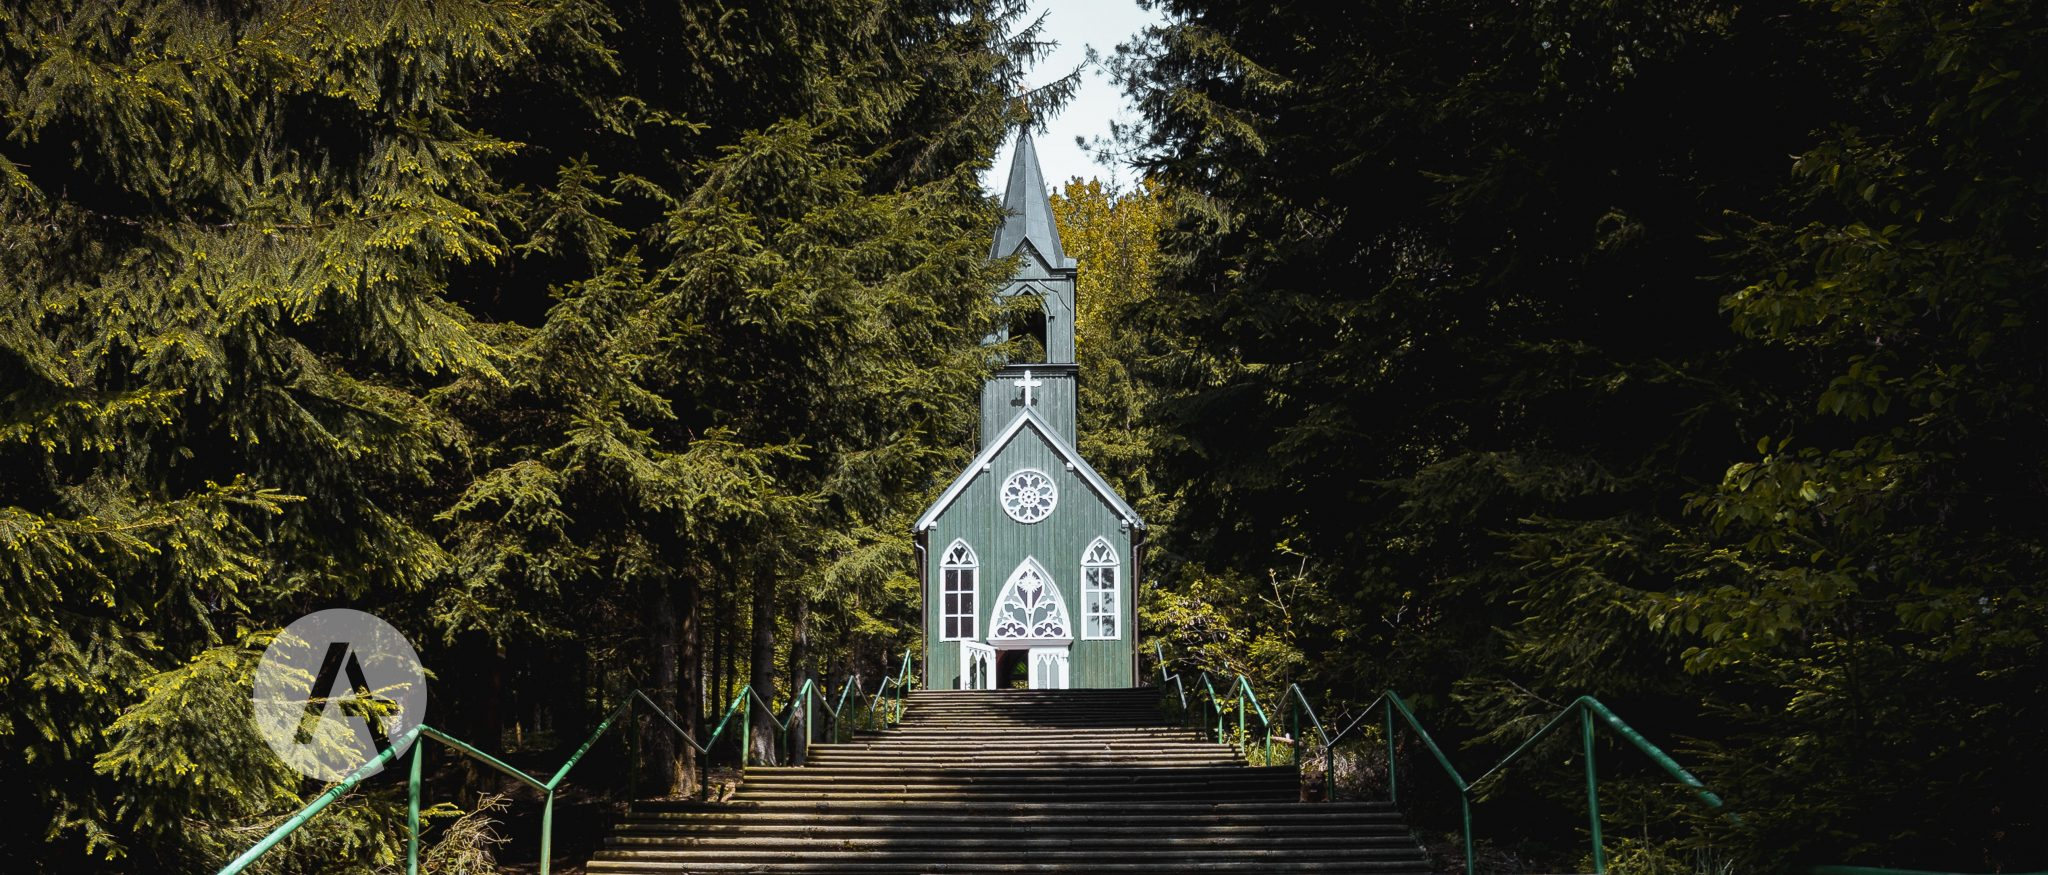 Should a Pastor Leave One Church to Plant Another One?